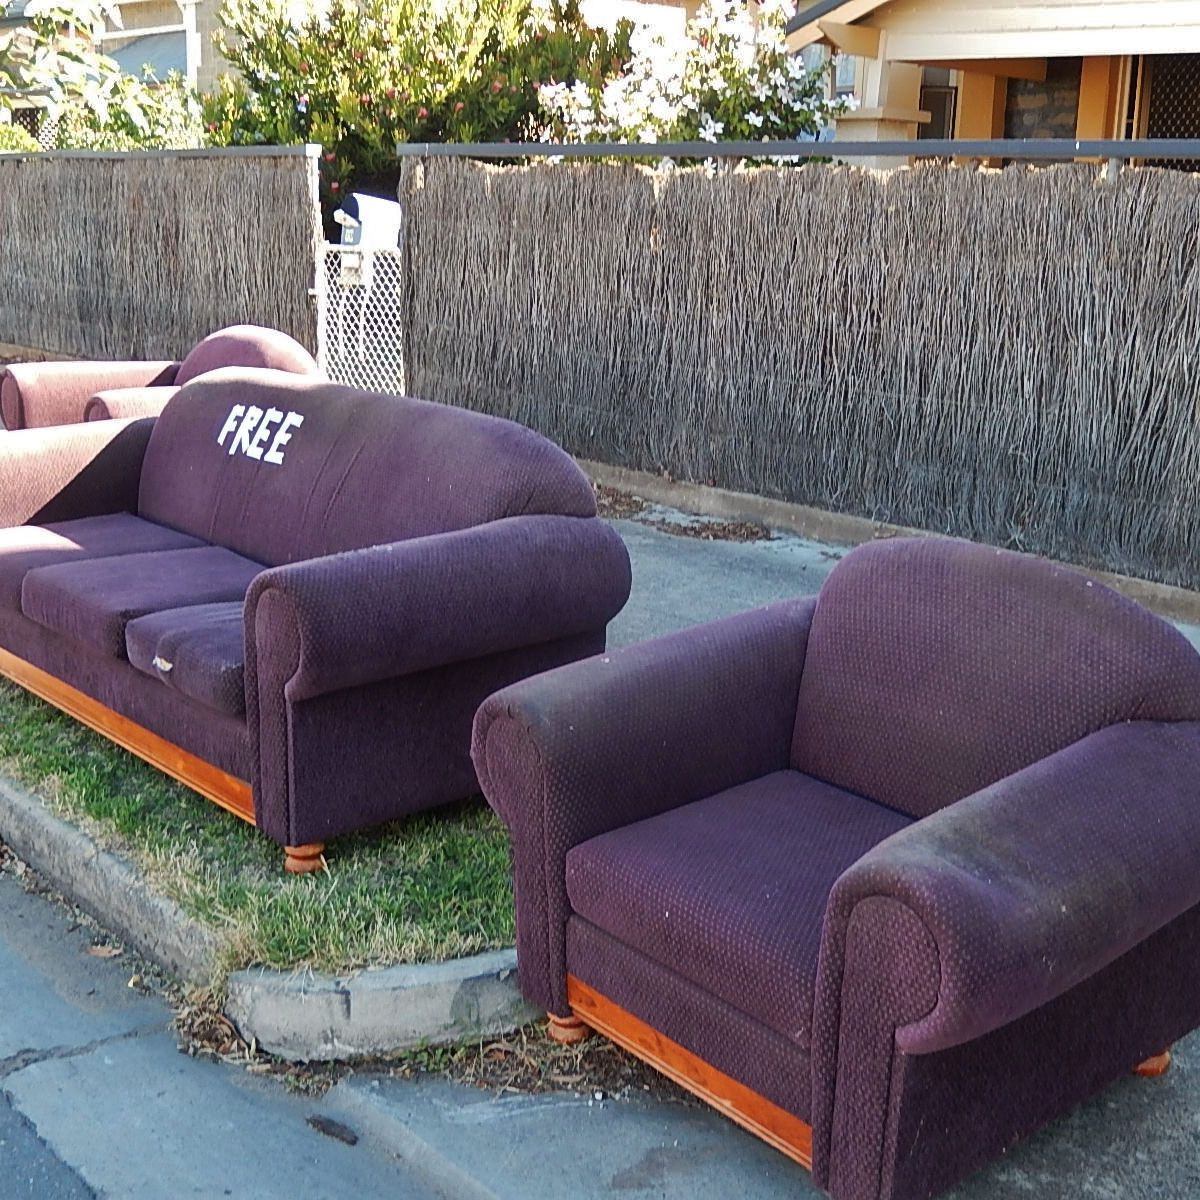 5 Ways To Get Rid Of Unwanted Furniture